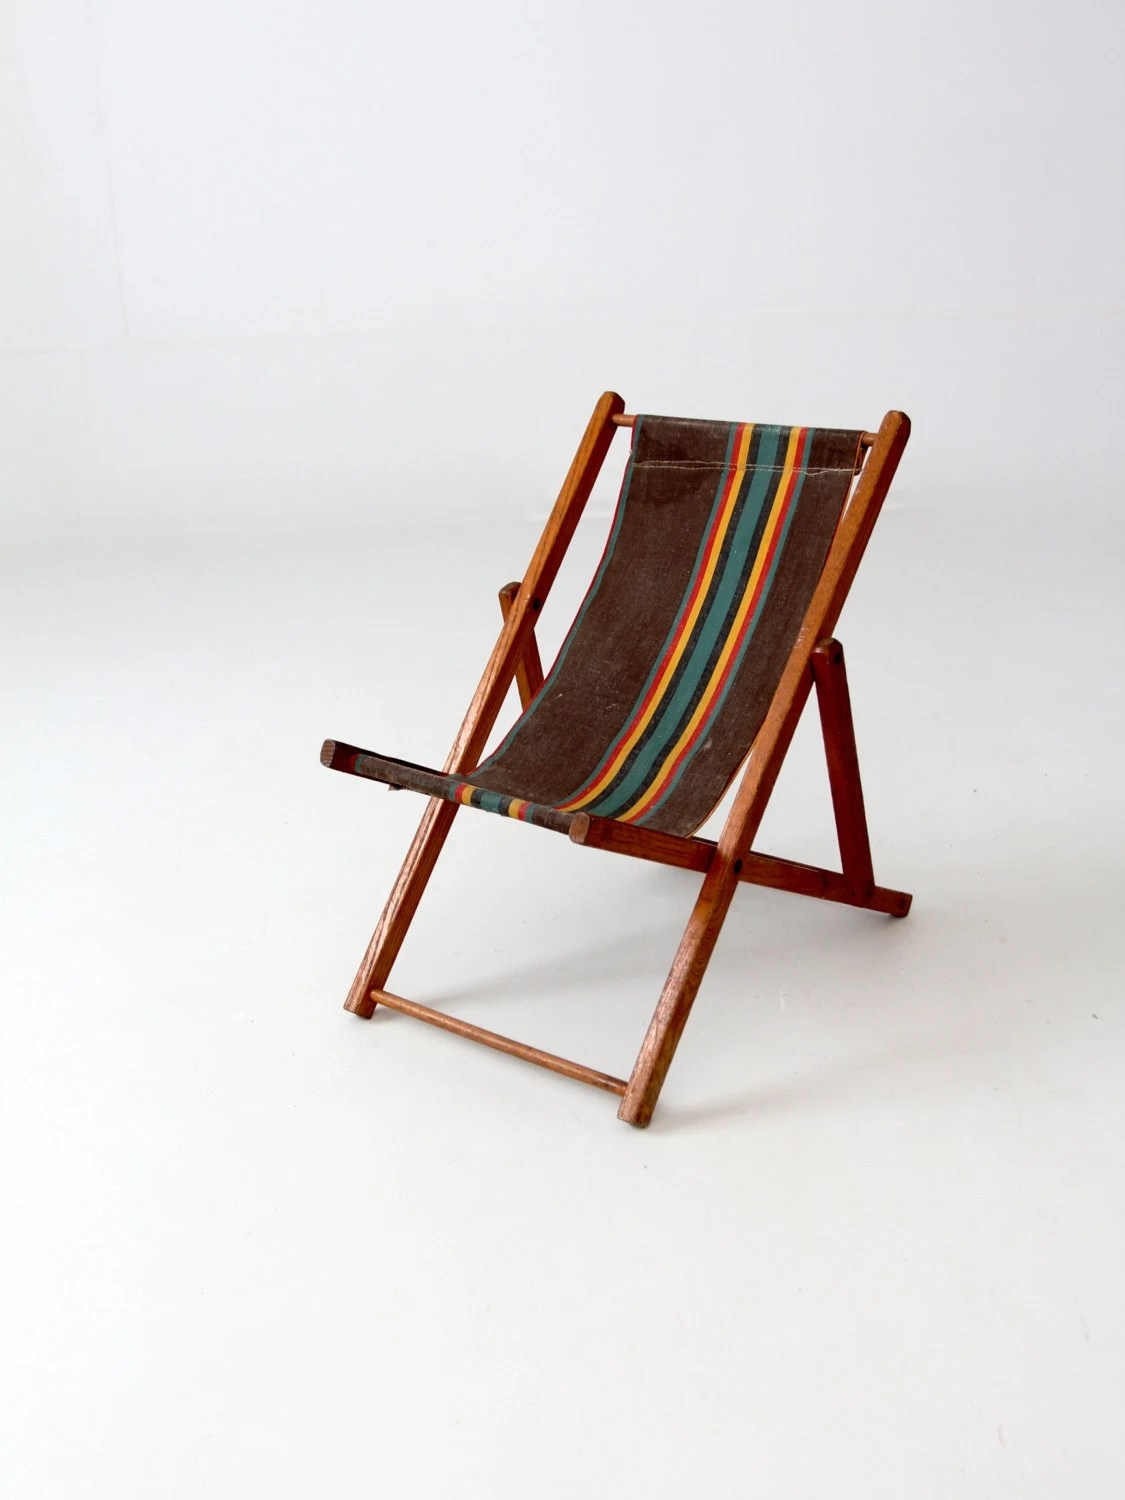 Folding Wood Beach Chair Vintage Children S Deck Chair Folding Beach Chair Kids Patio Chair